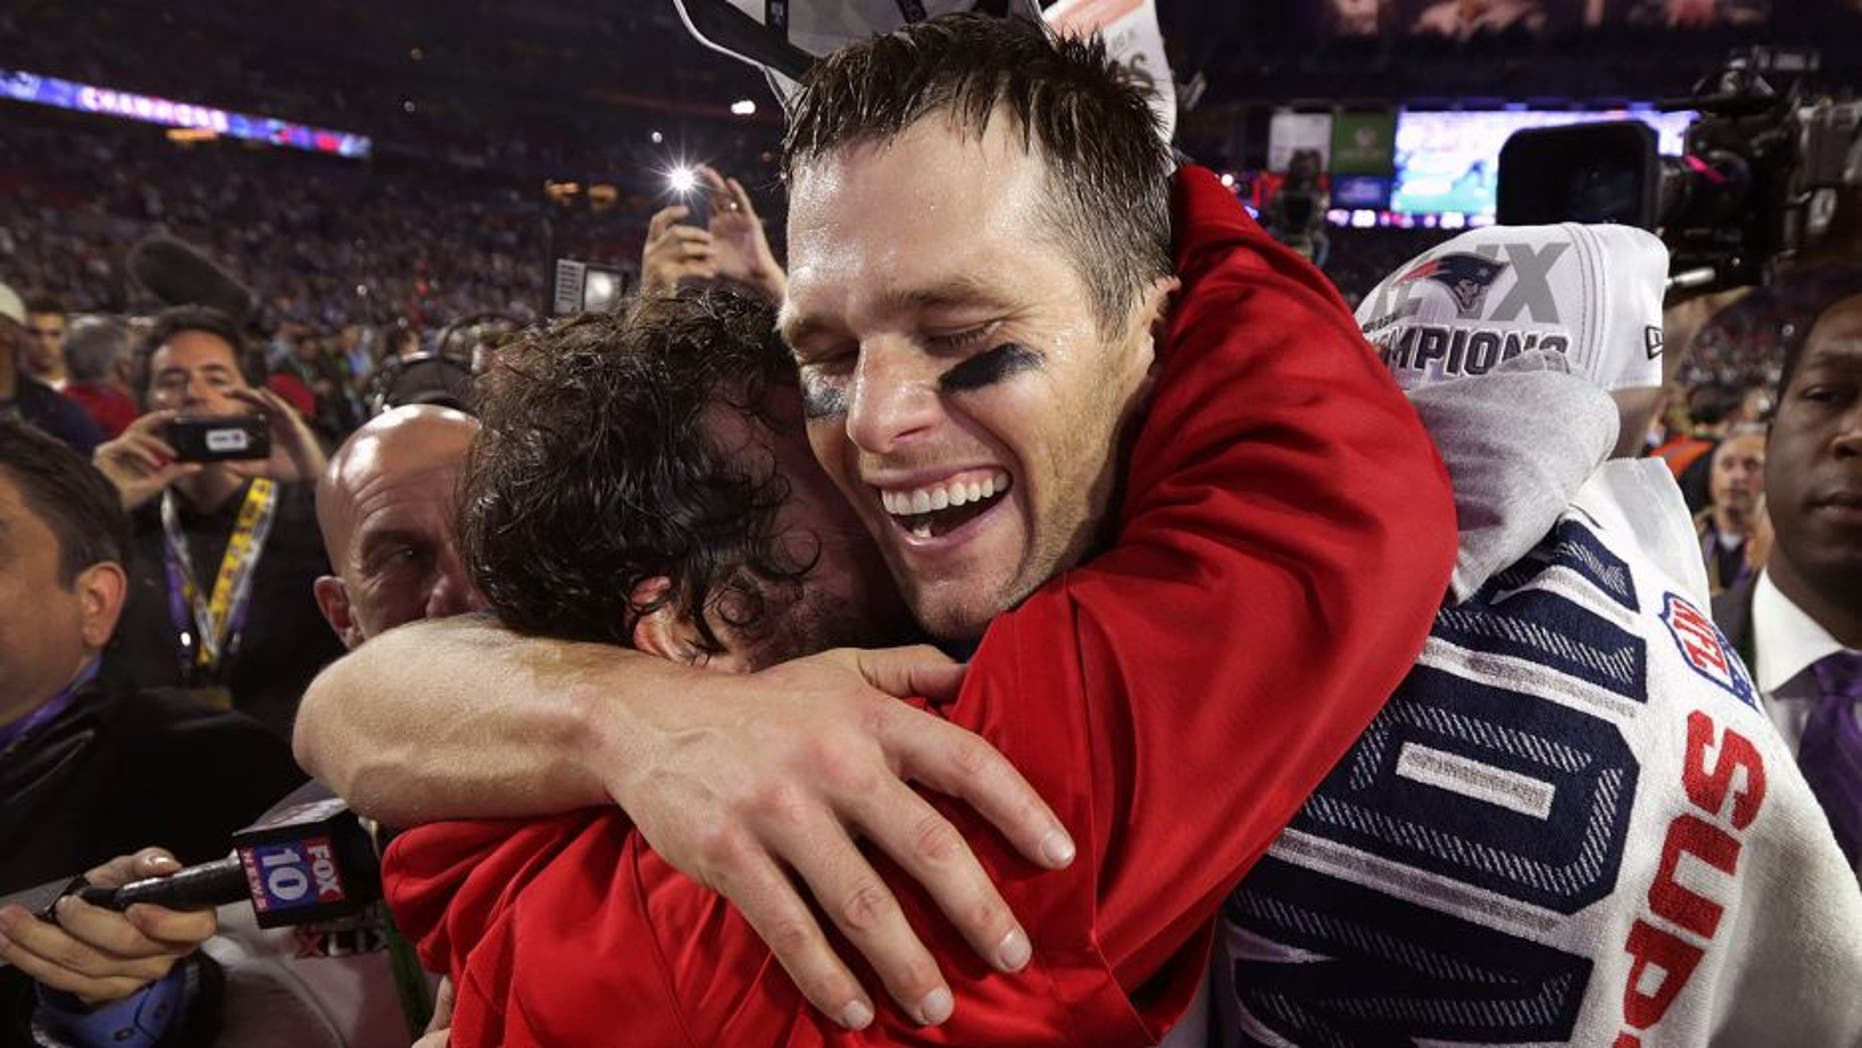 GLENDALE, AZ - FEBRUARY 1: New England Patriots quarterback Tom Brady shares a hug with Patriots defensive coordinator Matt Patricia after winning Super Bowl XLIX. (Photo by Barry Chin/The Boston Globe via Getty Images)